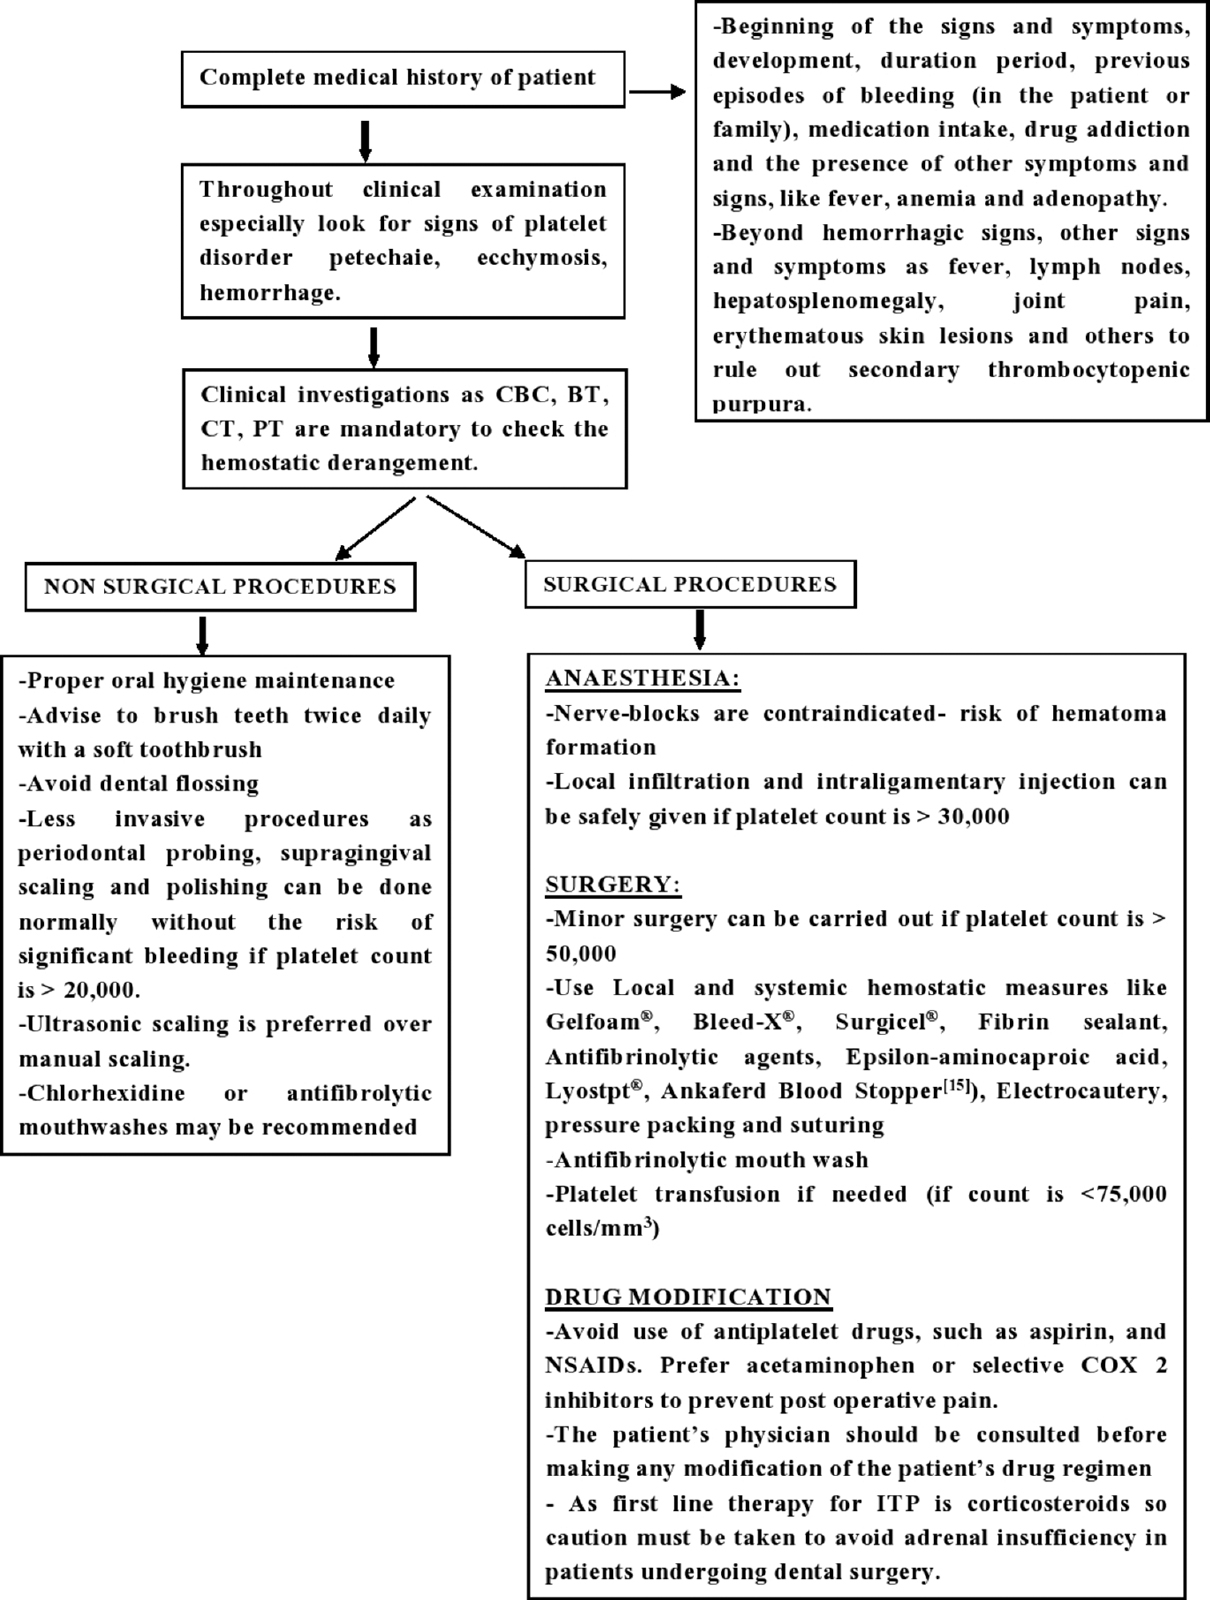 Clinical guidelines for periodontal management of idiopathic